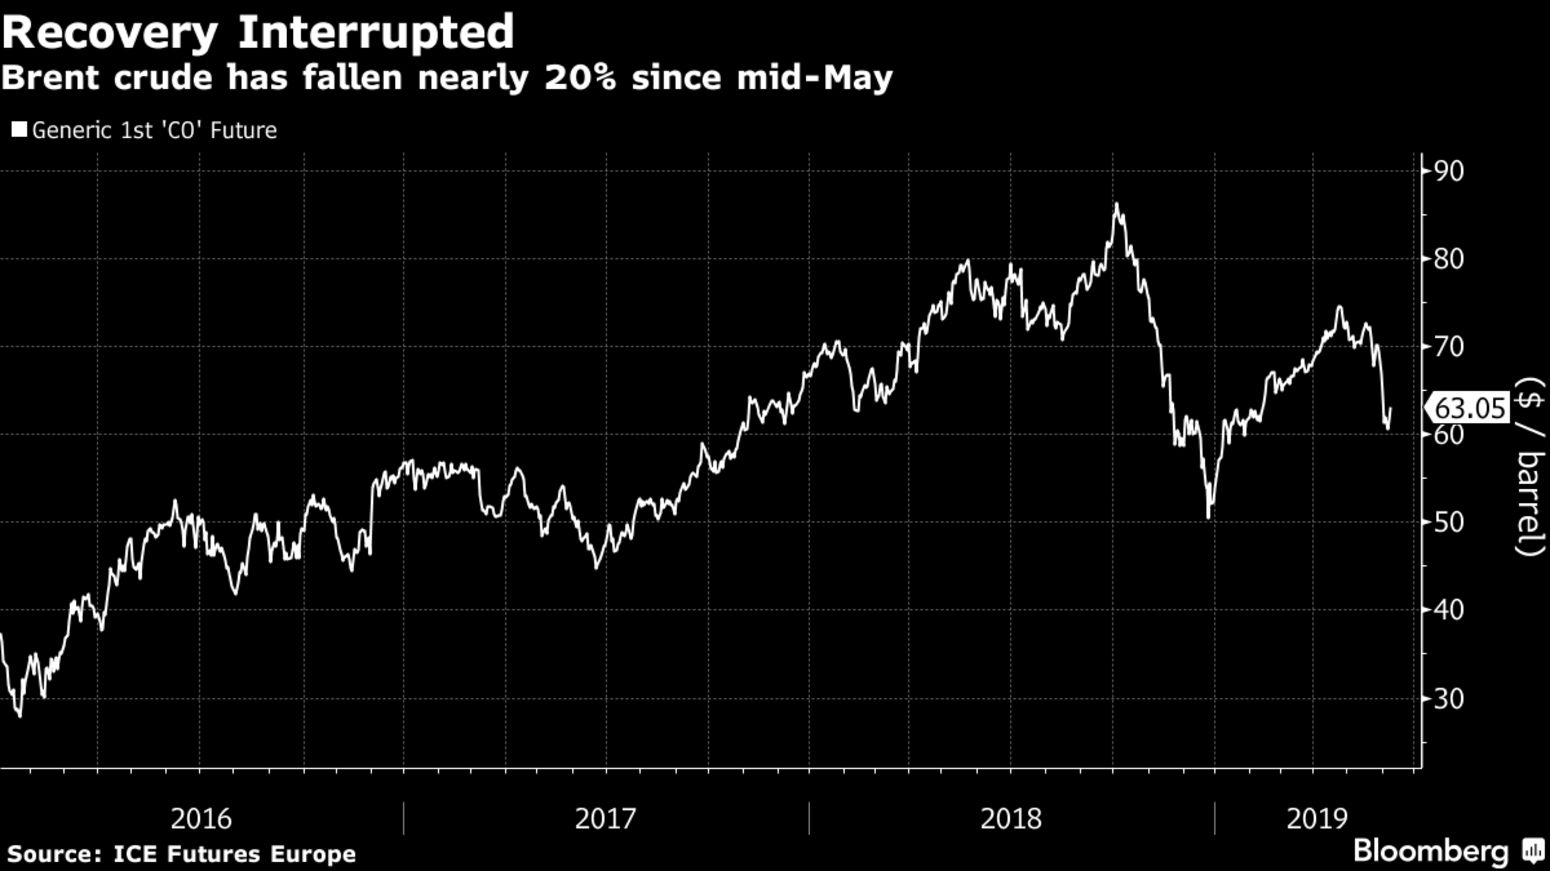 Brent crude has fallen nearly 20% since mid-May